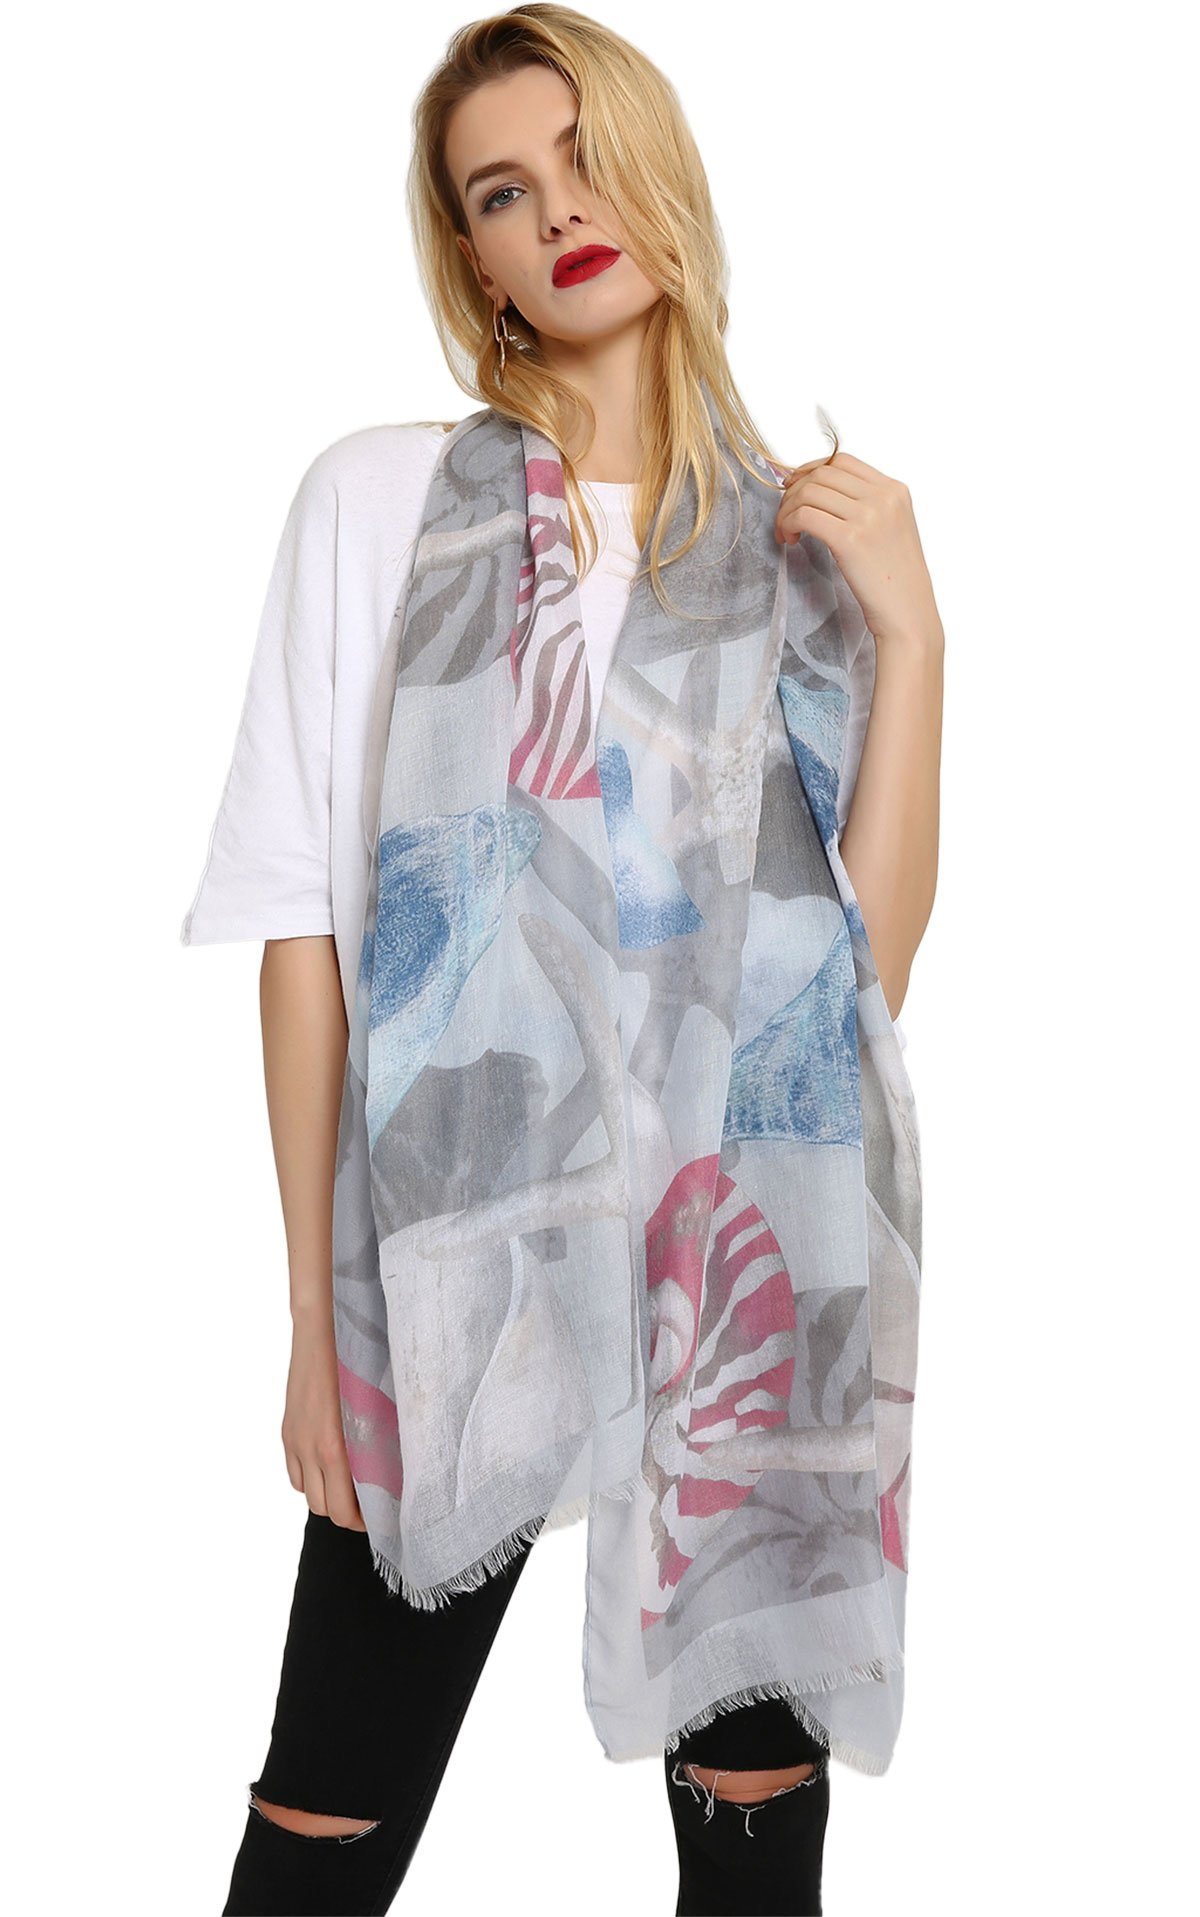 Vibrant Patterned Scarf Shawl Summer Thin Cotton Beach Cover Wrap Grey